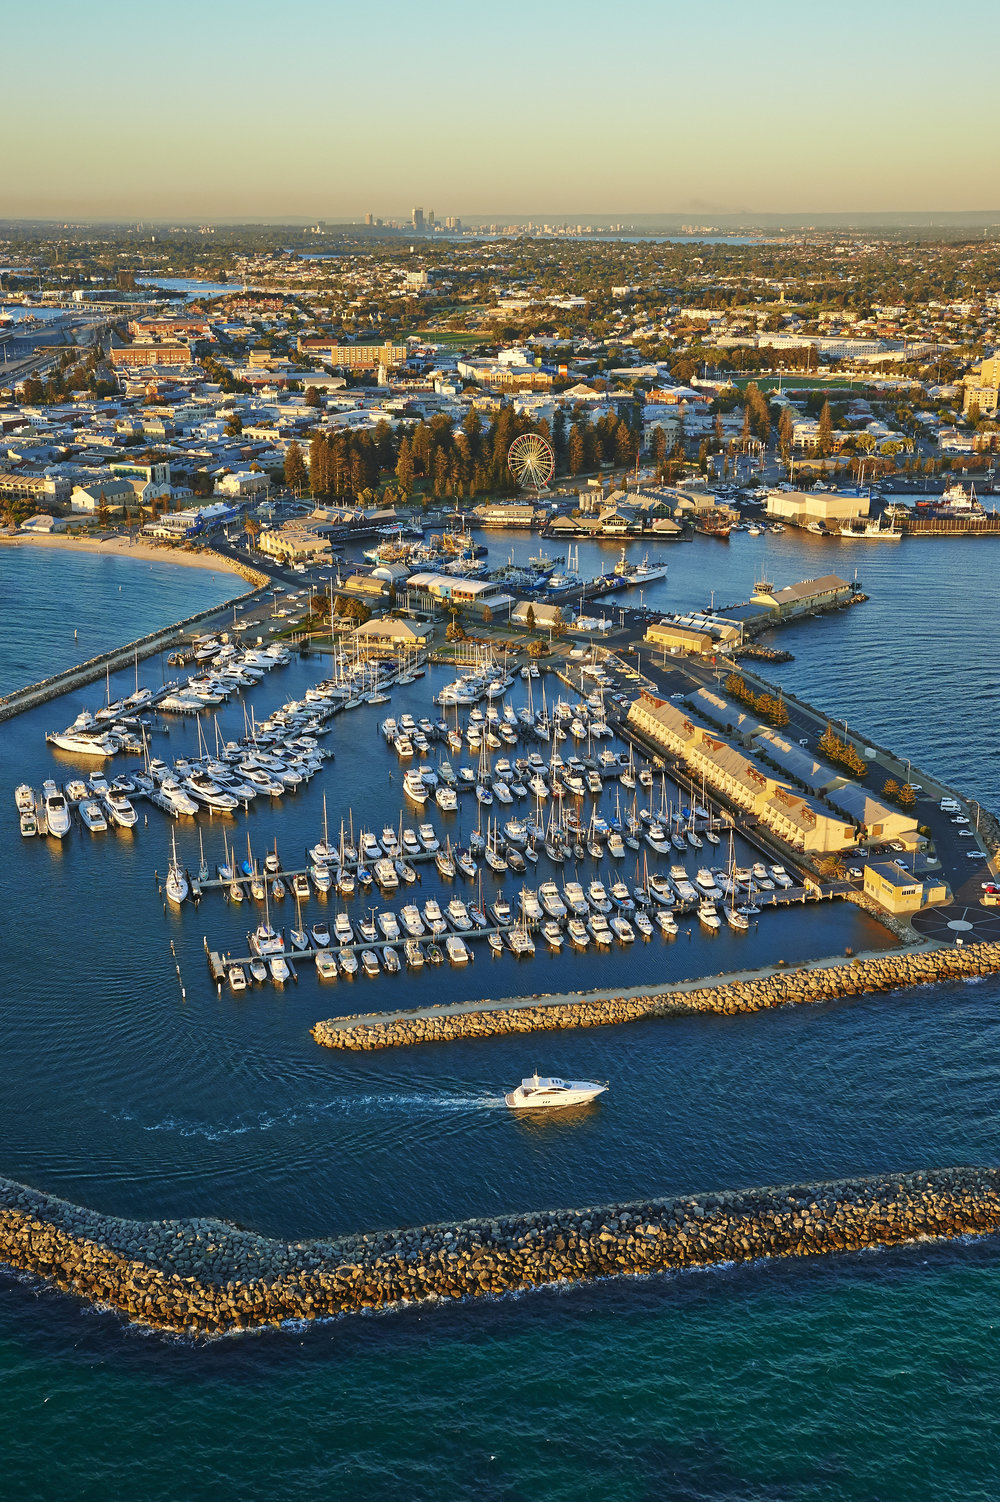 Copy of Aerial view of Fremantle